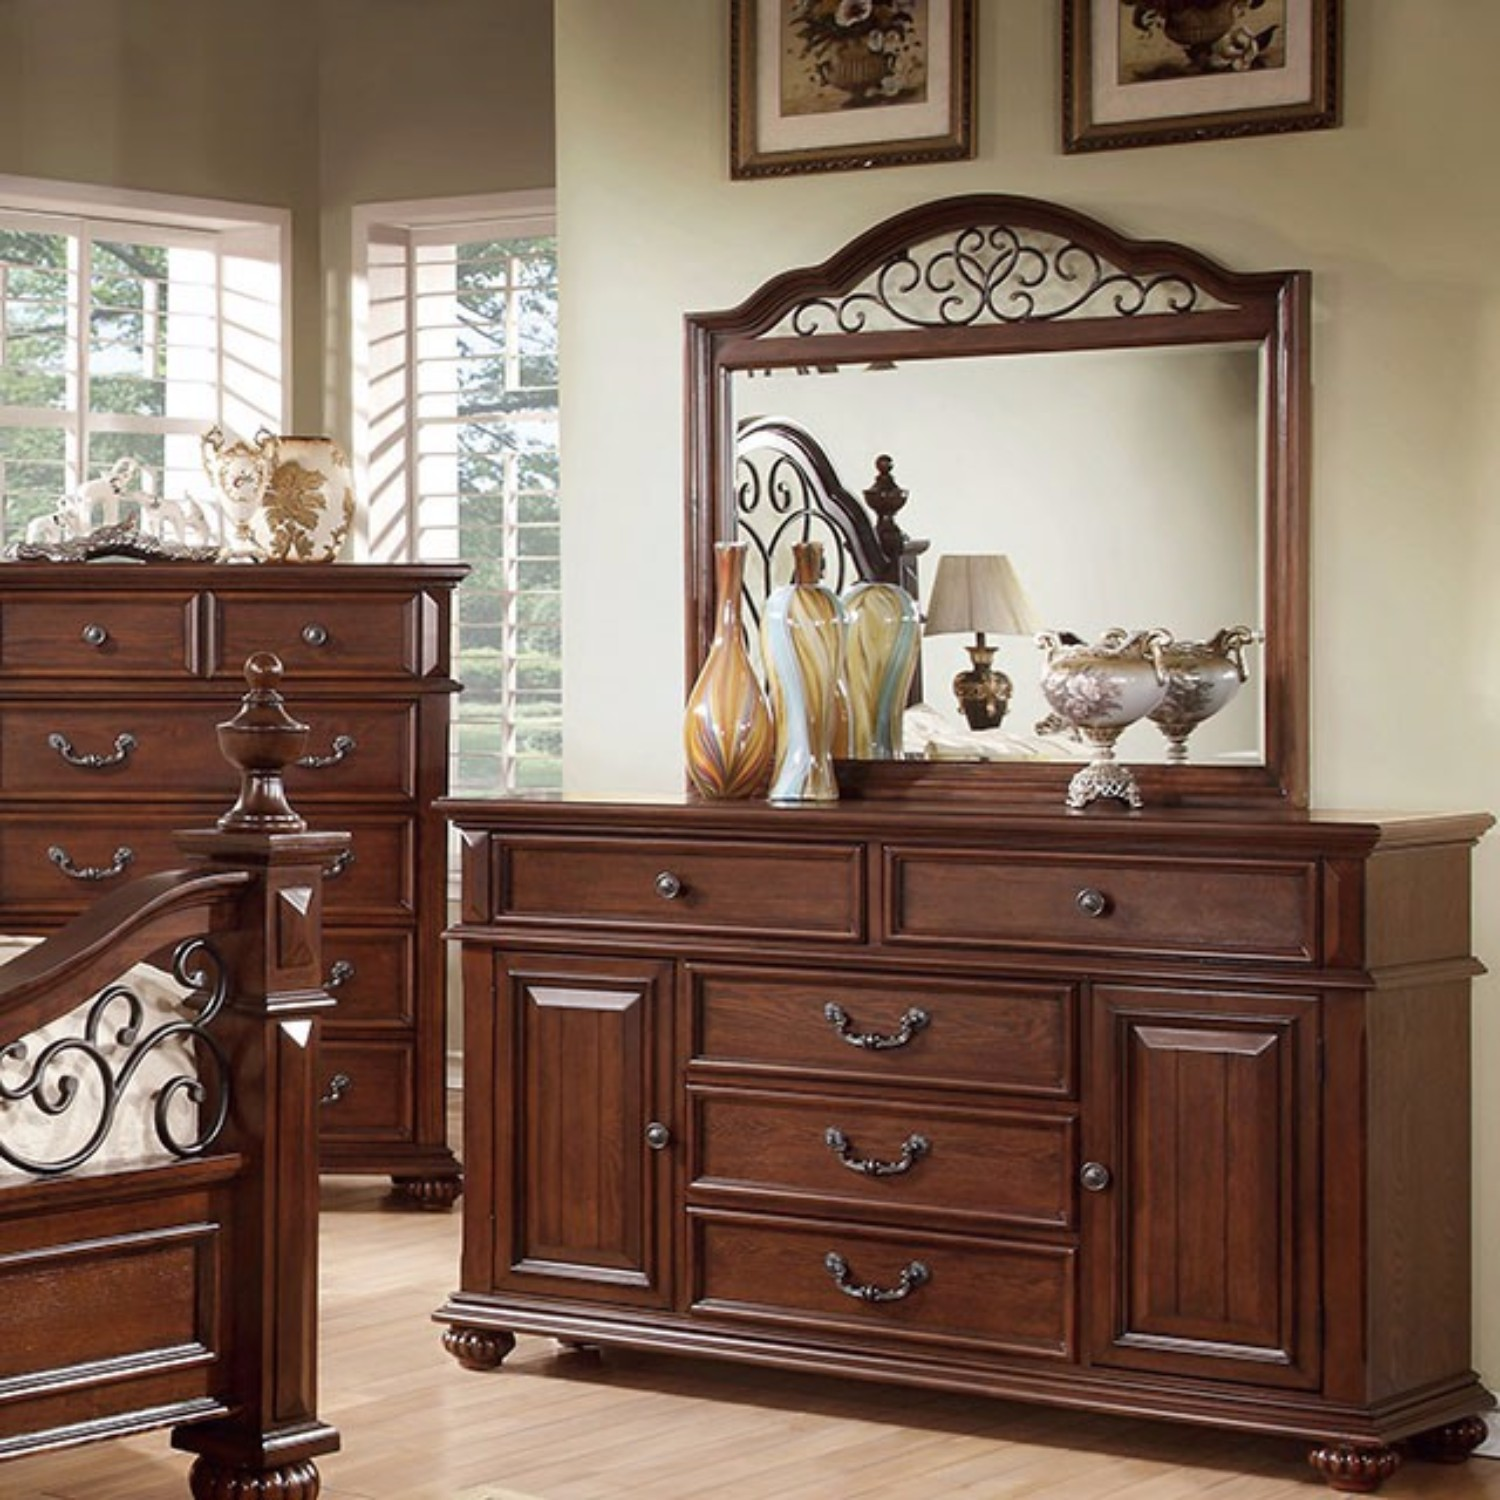 Astounding Wooden Dresser In Traditional Style, Antique Dark Oak Brown